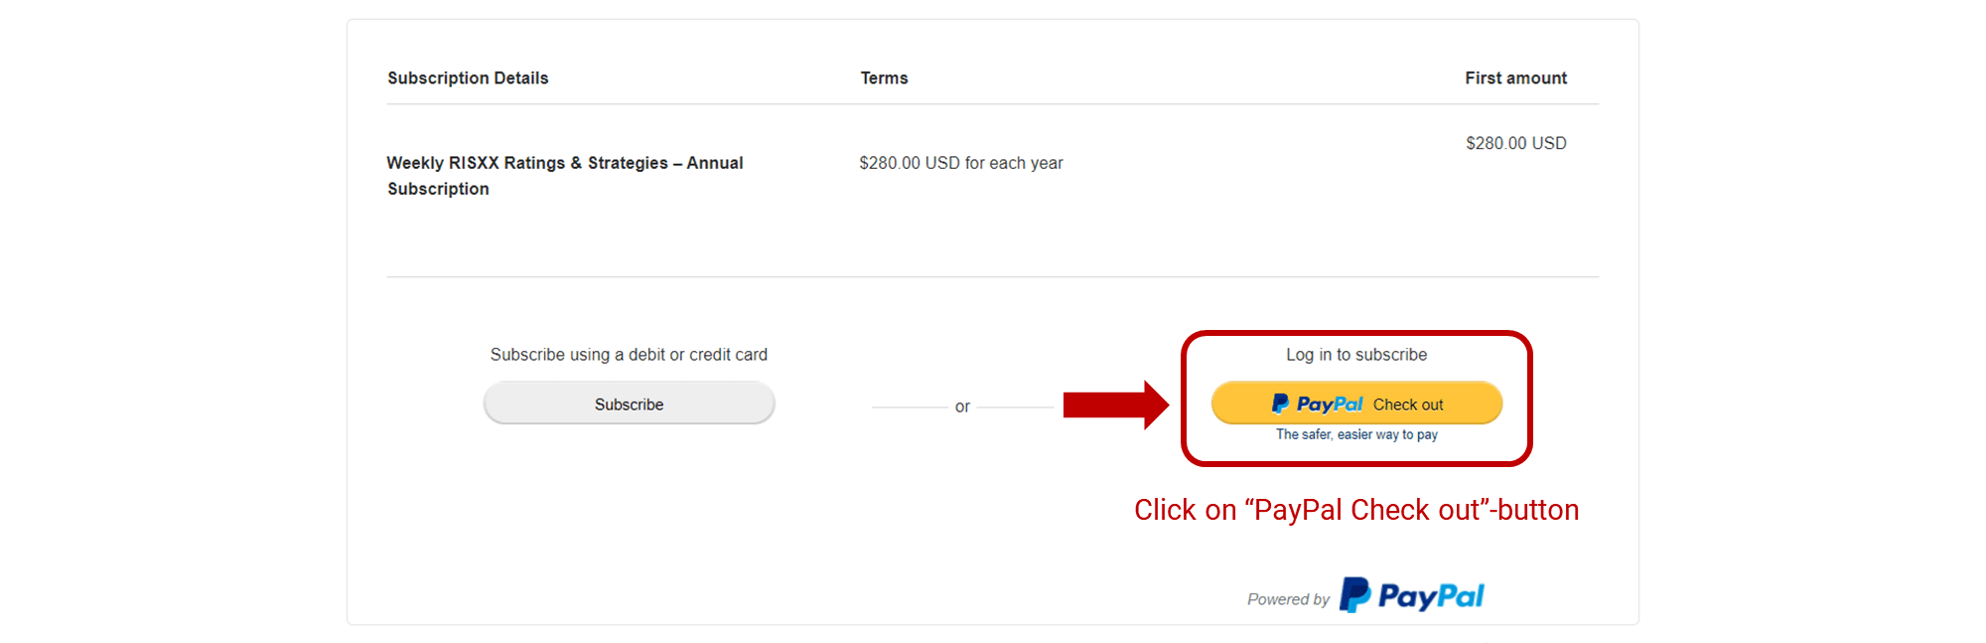 RISXX risk solutions – PayPal payment – click on PayPal checkout out button